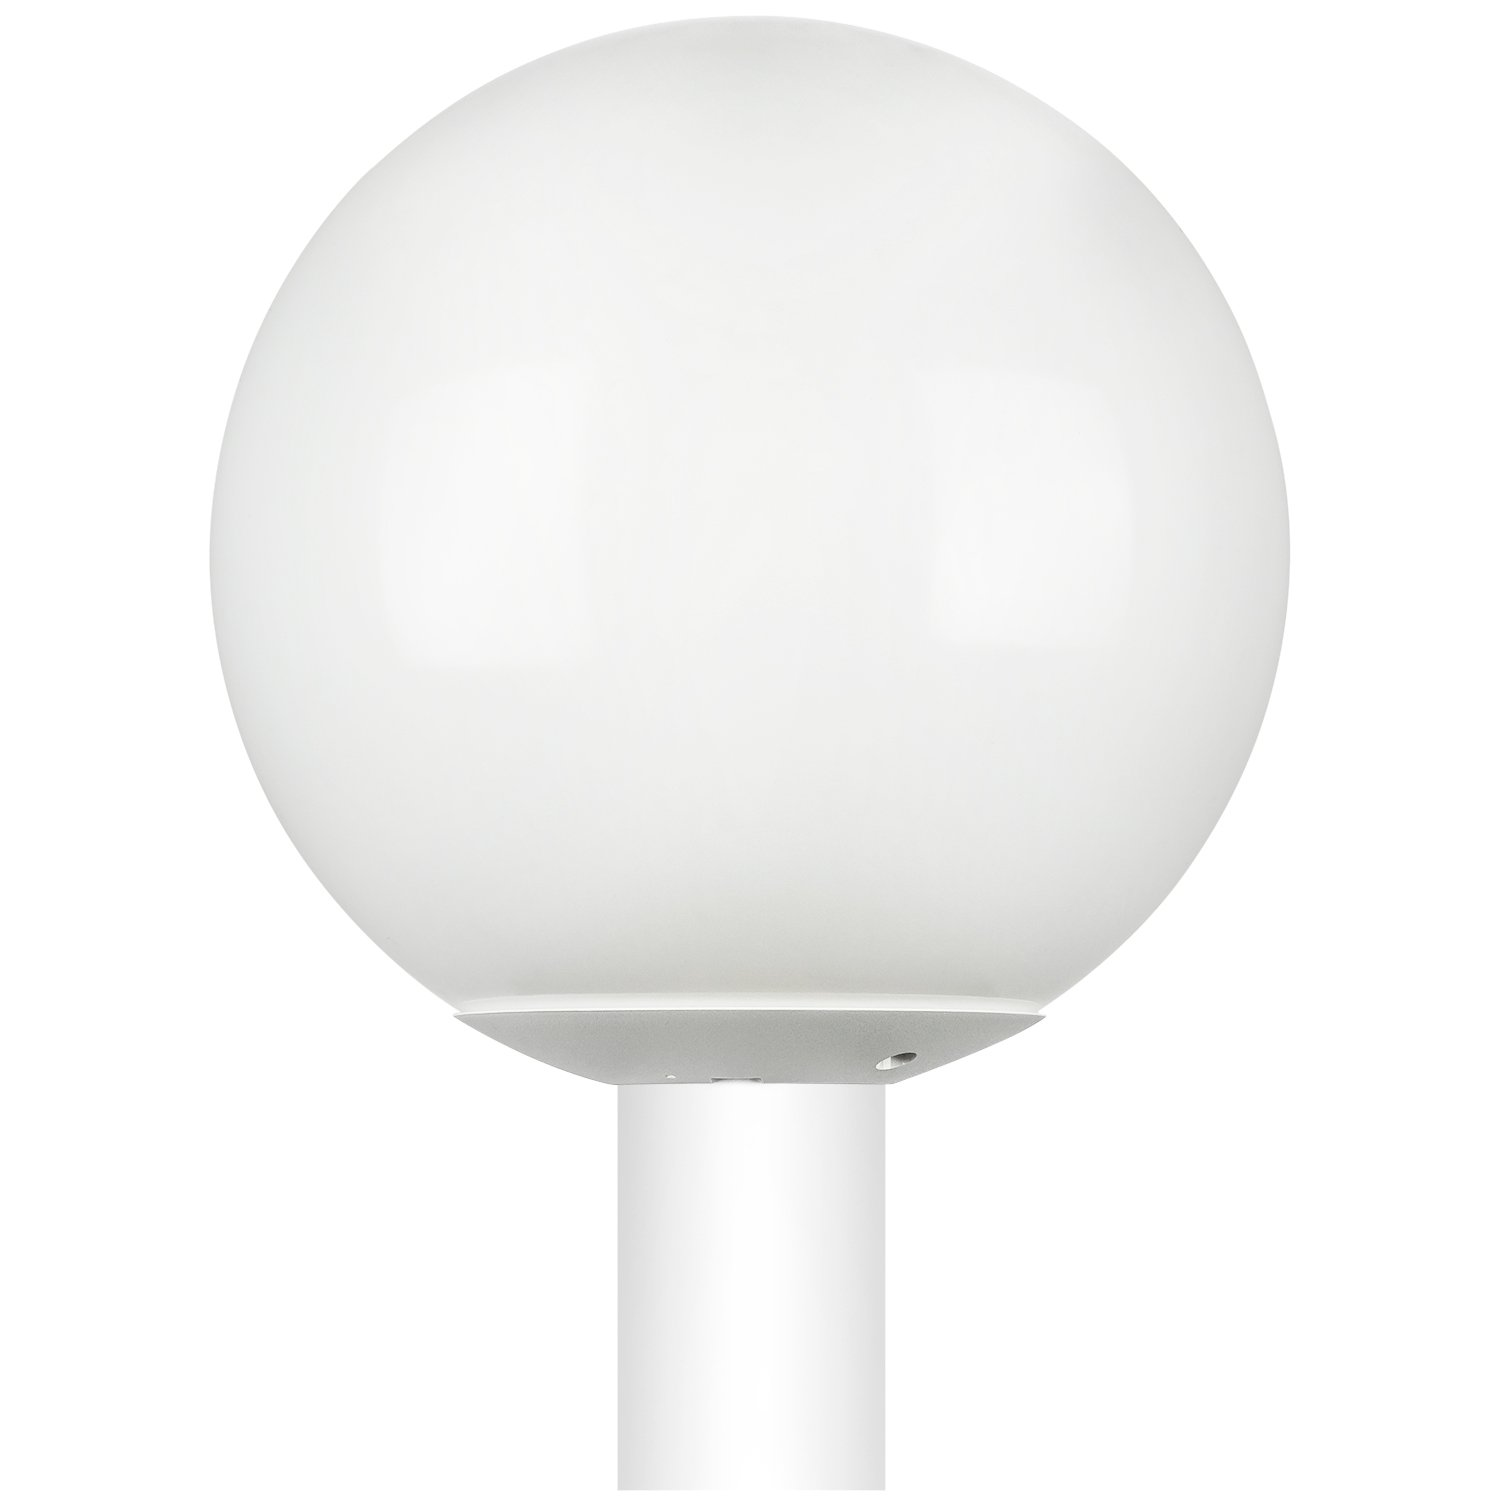 """Sunlite DOD/12GL/WH/WH/MED 12"""" Decorative Outdoor Neckless Globe Polycarbonate Post Fixture, White Finish, White Lens, 3"""" Post Mount (Not Included), 12"""""""